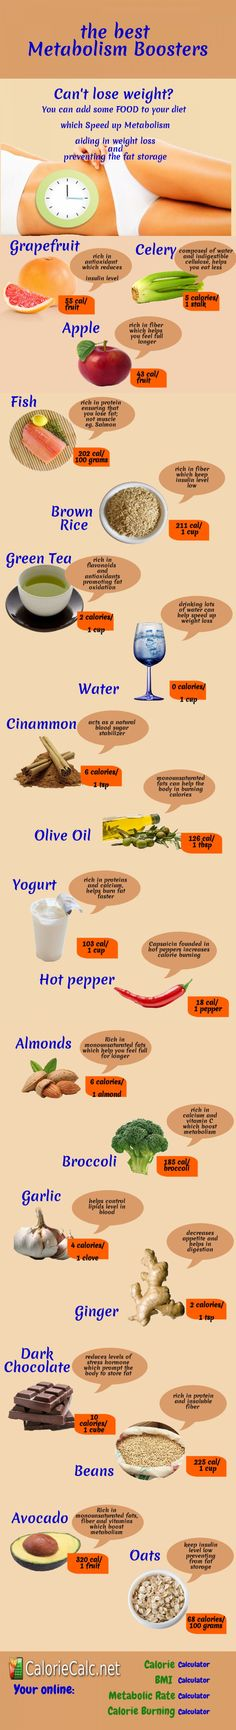 foods that increase metabolism, metabol booster, metabolism boosters, healthi, diet infographic